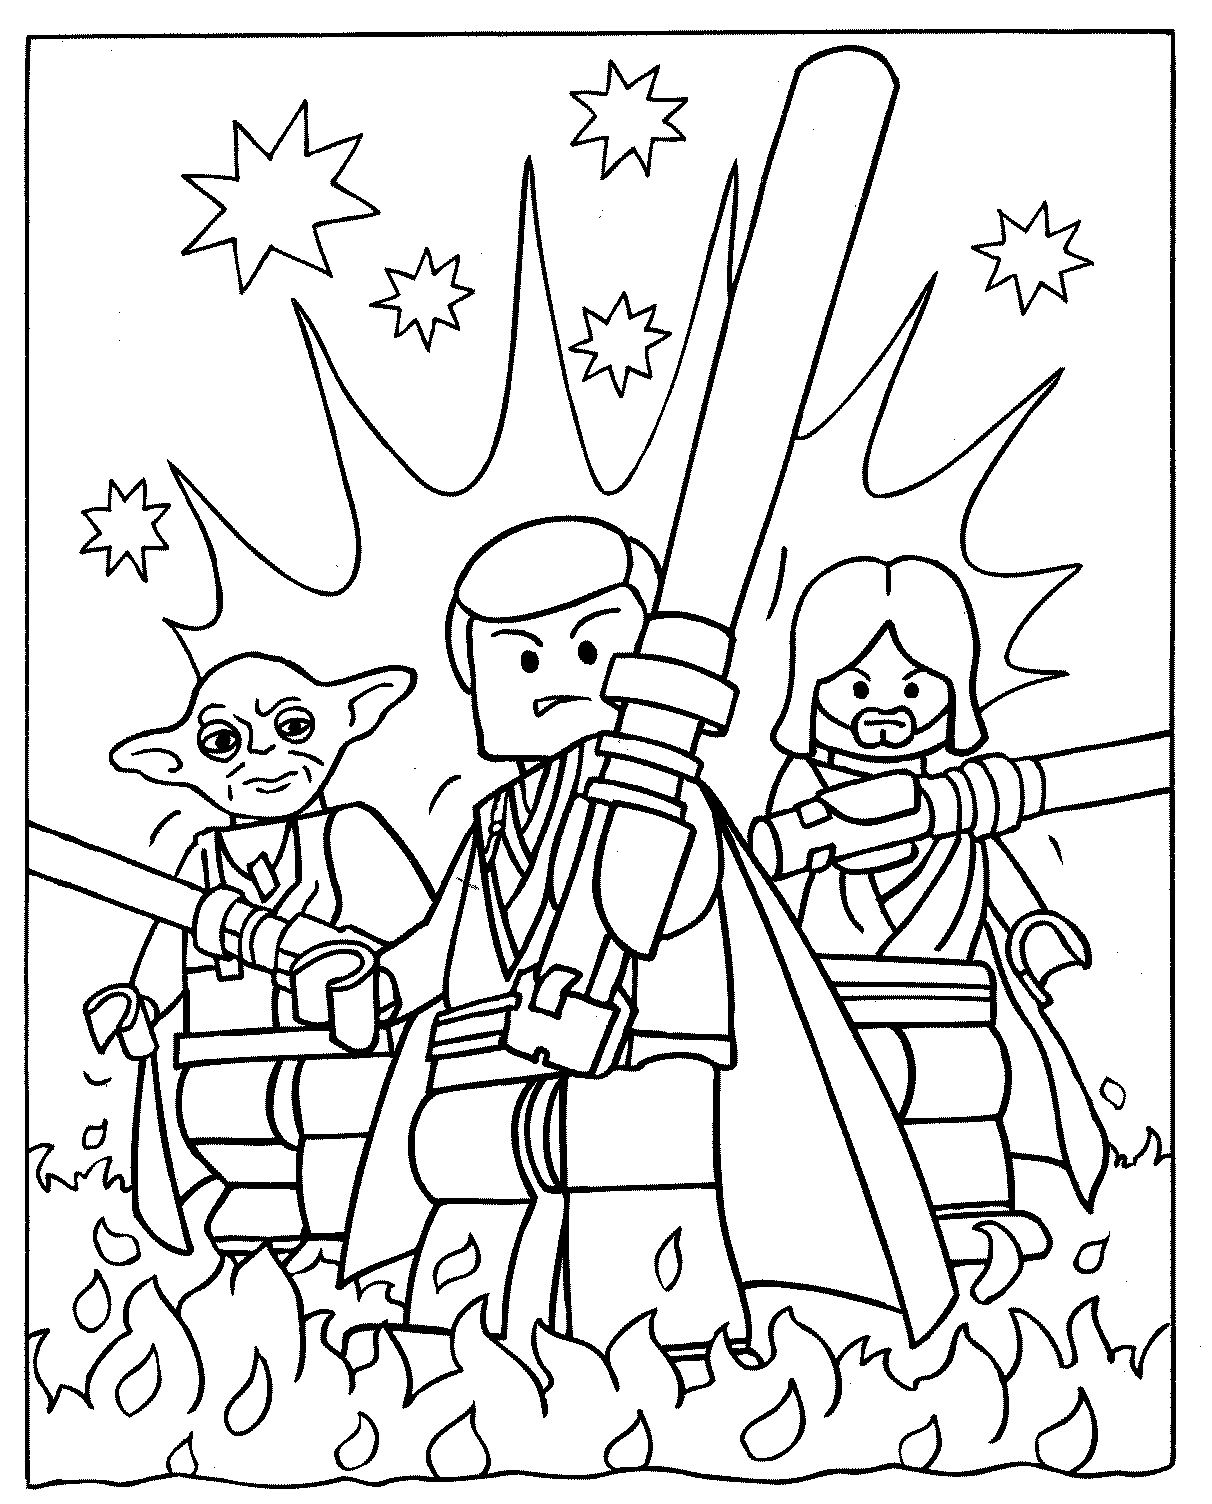 lego coloring pages to print free - free printable star wars coloring pages for kids